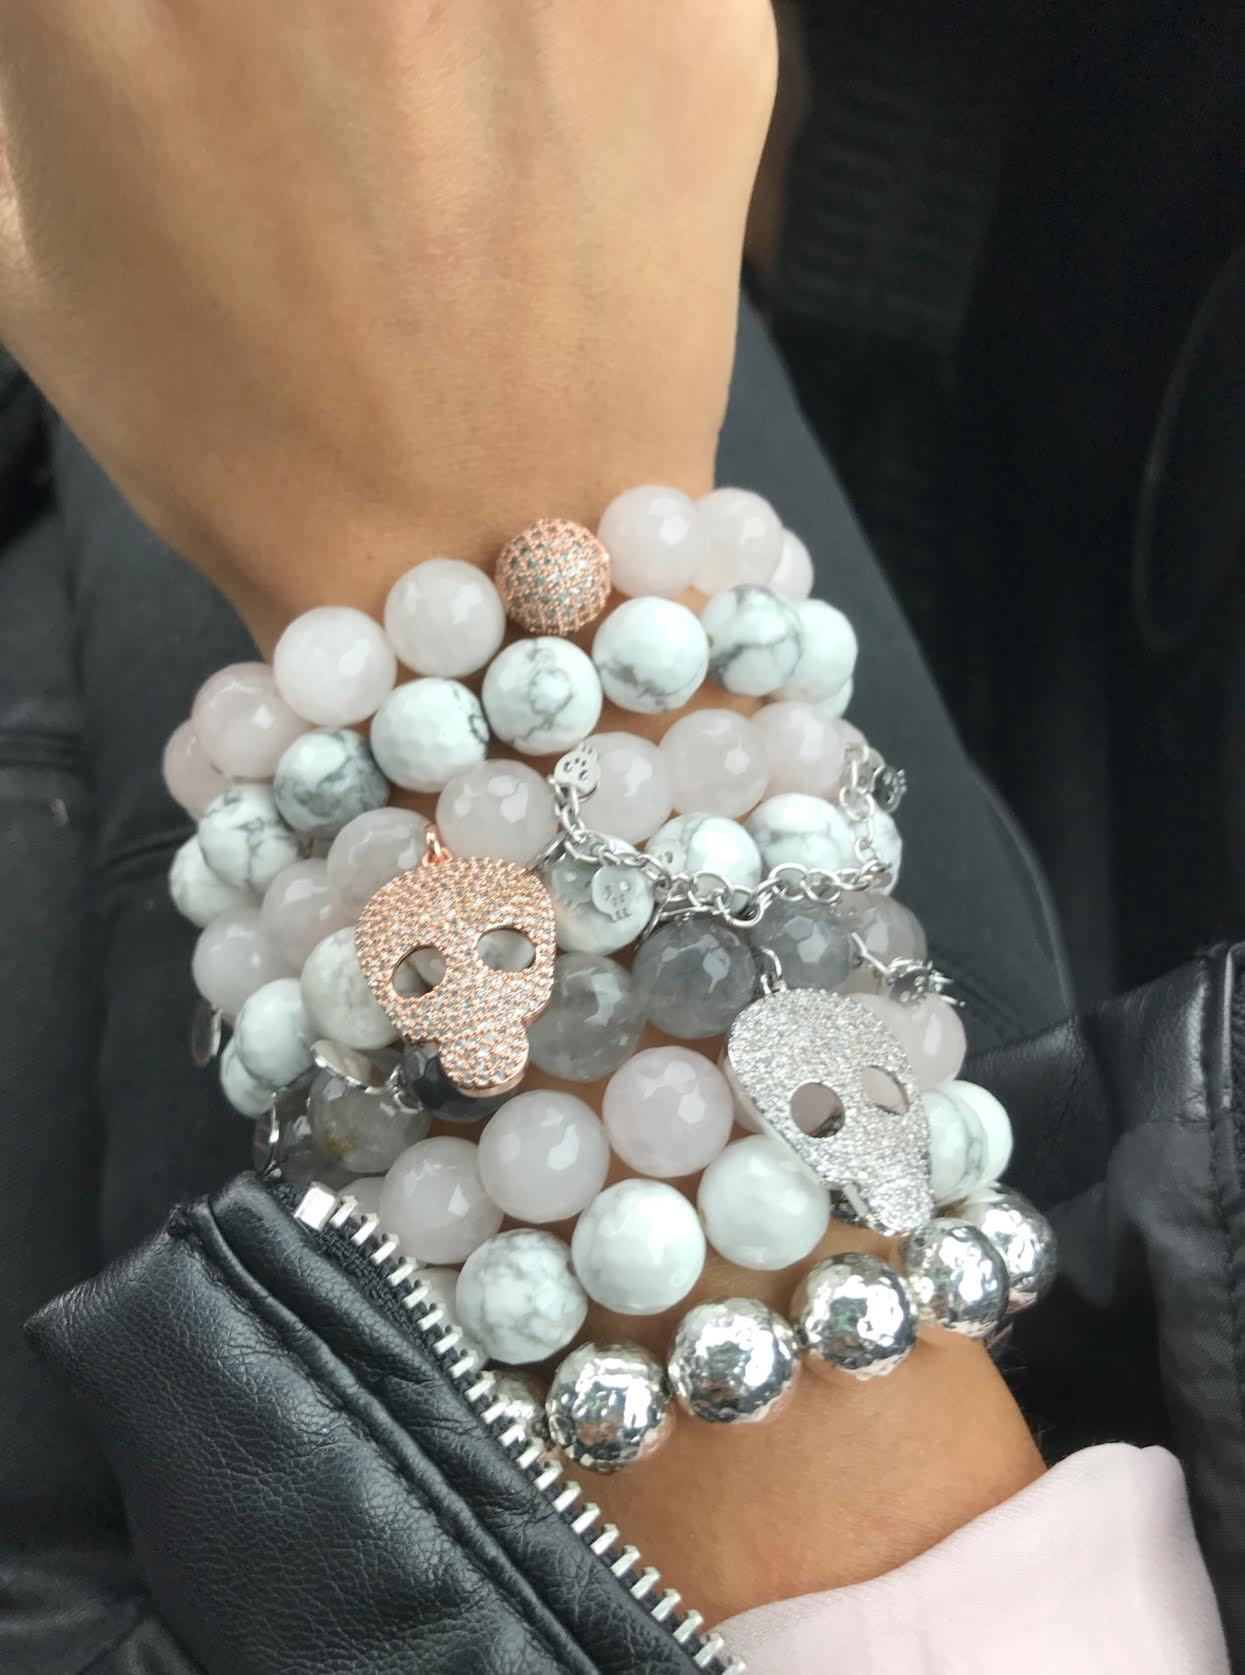 Grey Quartz with Pavé Silver Skull and Silver Skull Chain - Oriana Lamarca LLC